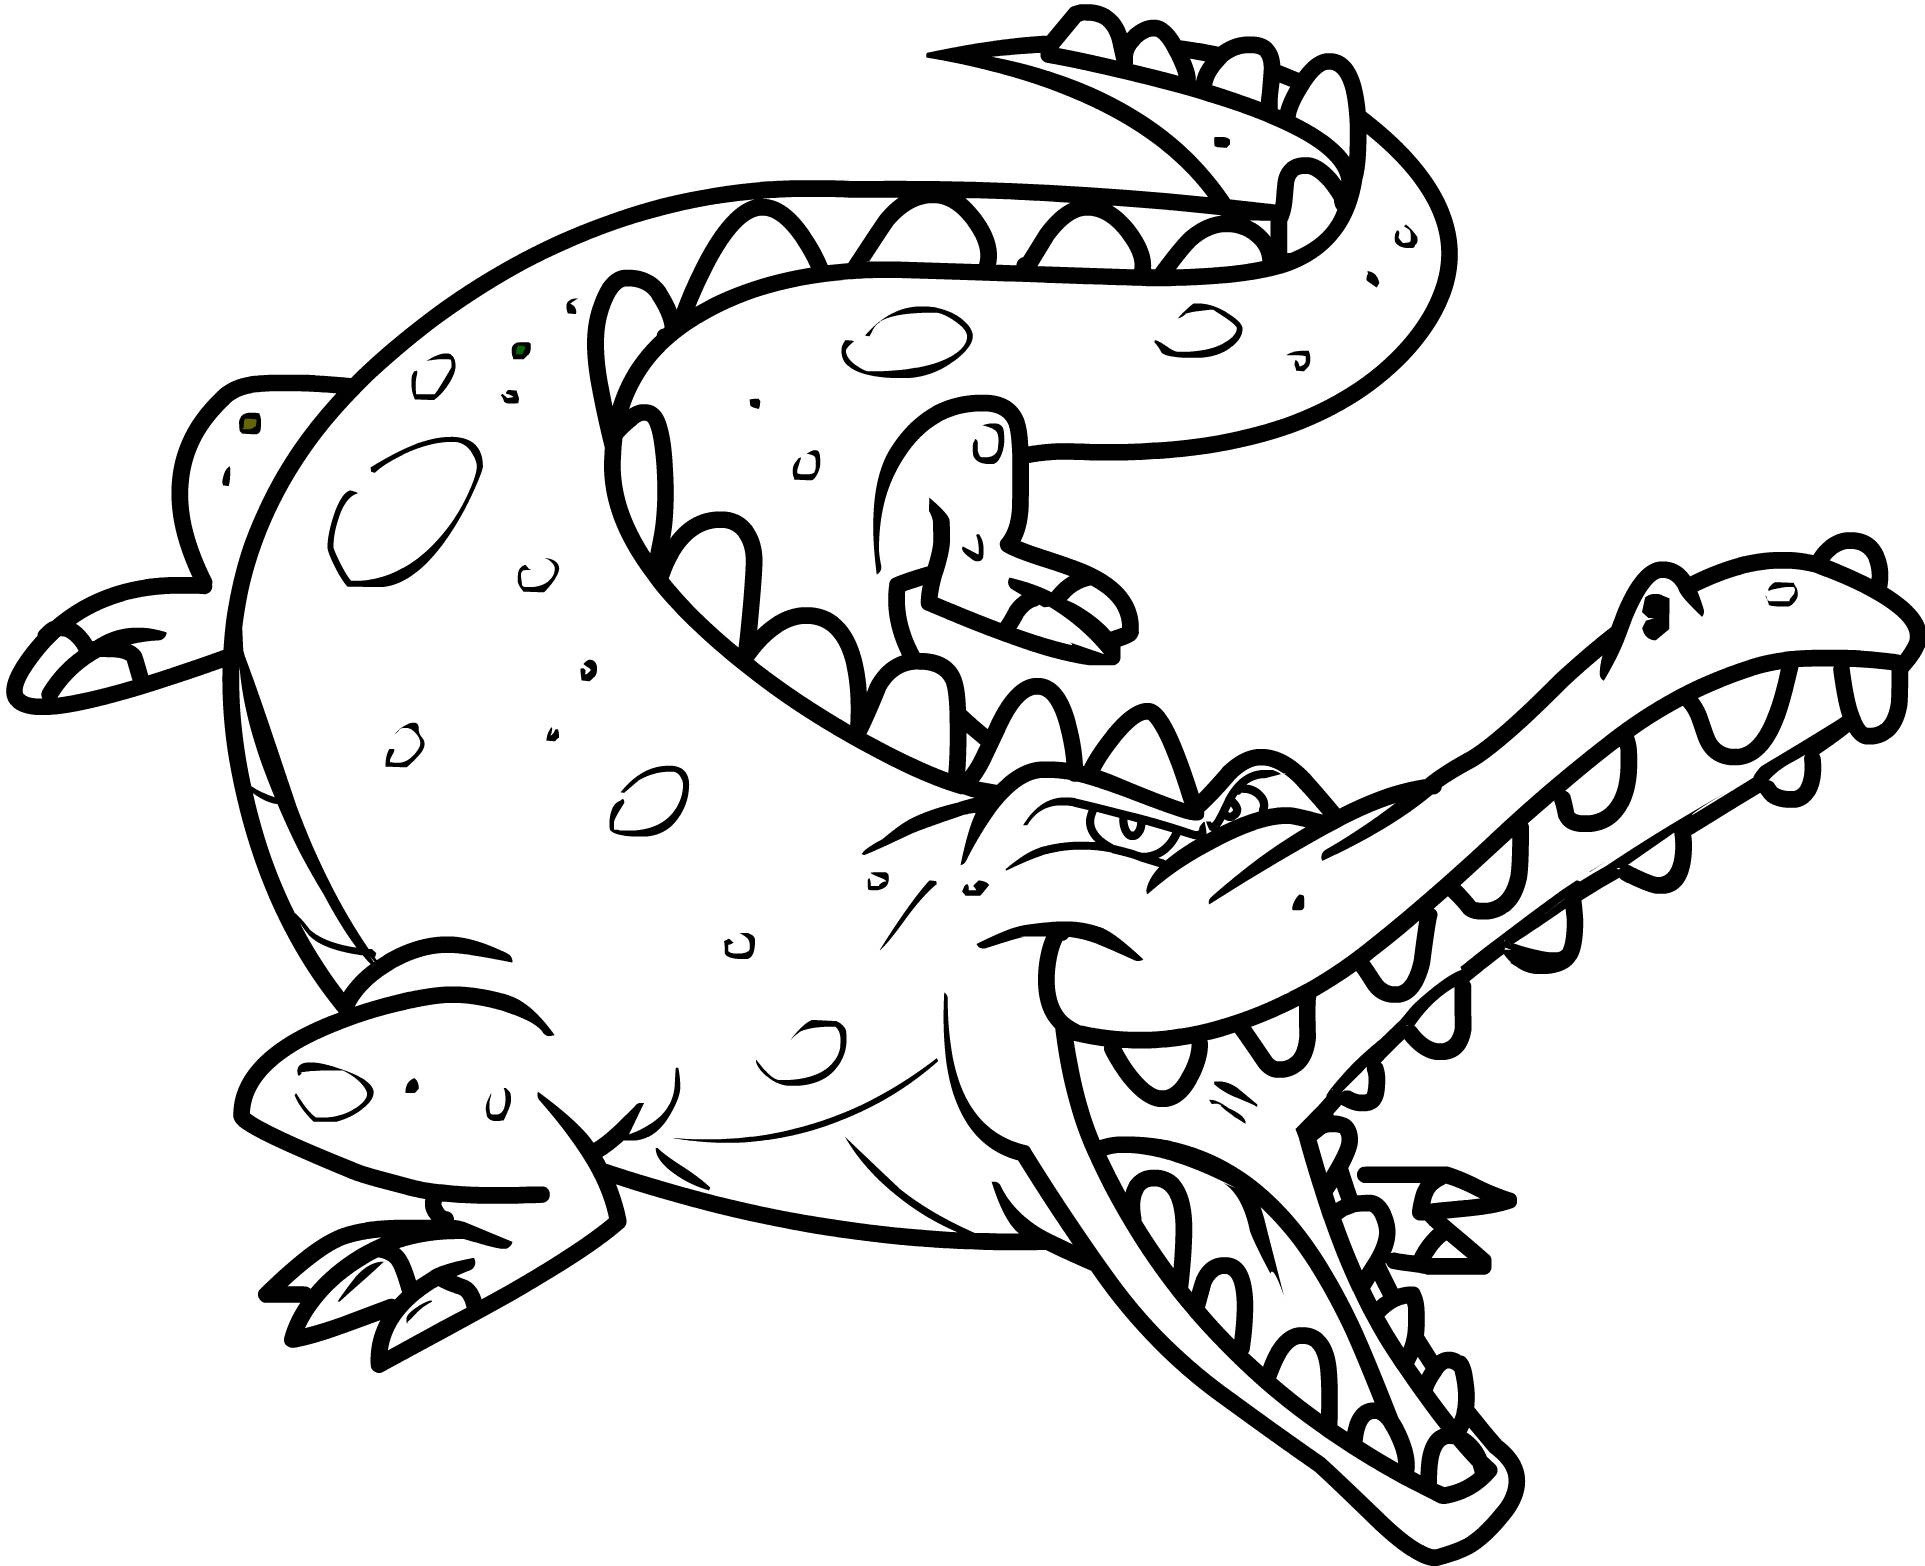 crocodile color crocodile coloring pages download and print crocodile crocodile color